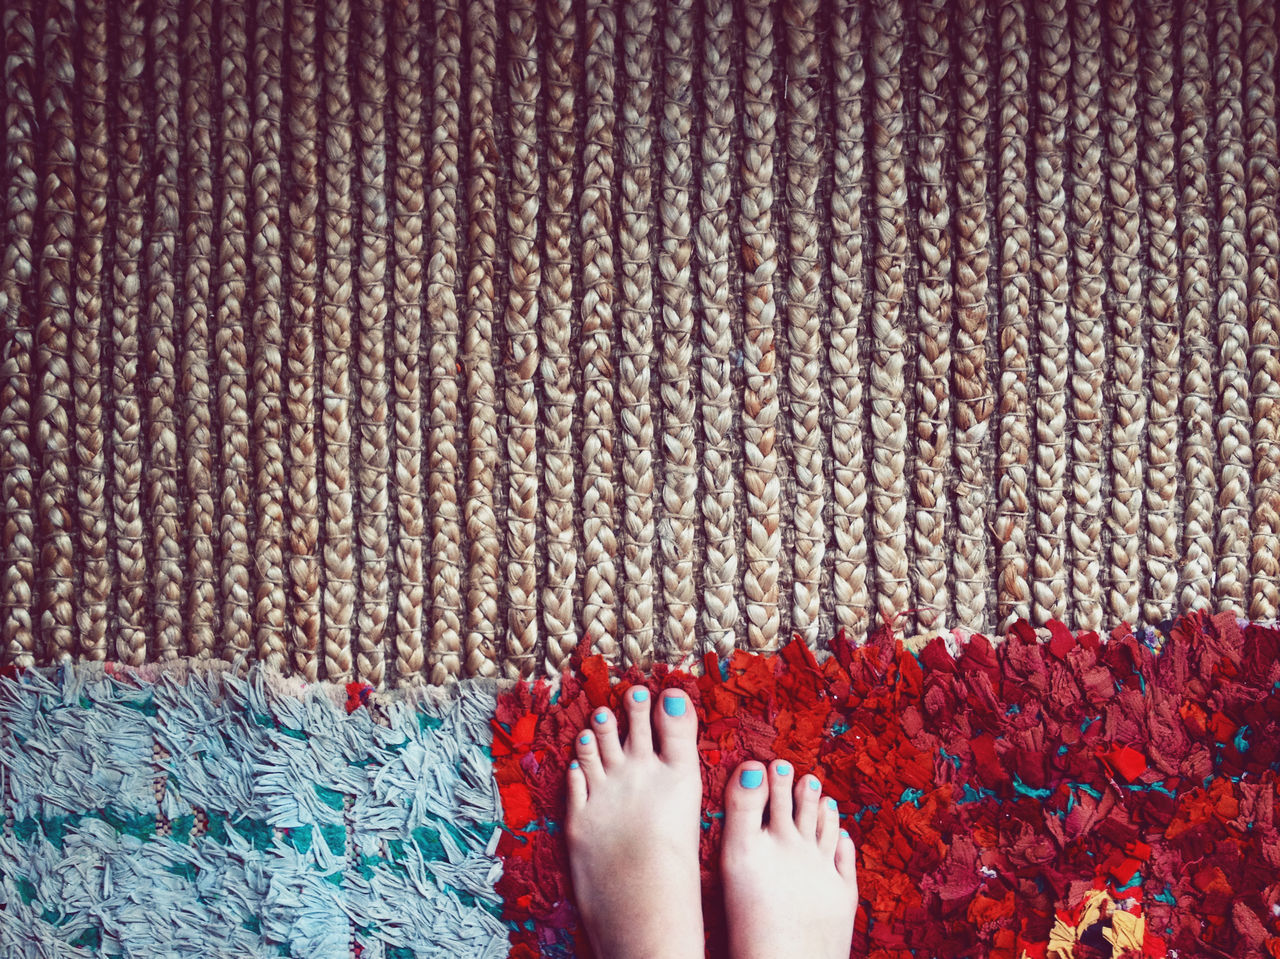 layered rugs in my home Abundance Backgrounds Bohemian Carpet Close-up Design Detail Feet From My Point Of View Human Foot Interior Interior Design Layering Low Section Multi Colored Nailpolish Part Of Personal Perspective Pink Color Red Room For Text Rug Style Teal Unrecognizable Person